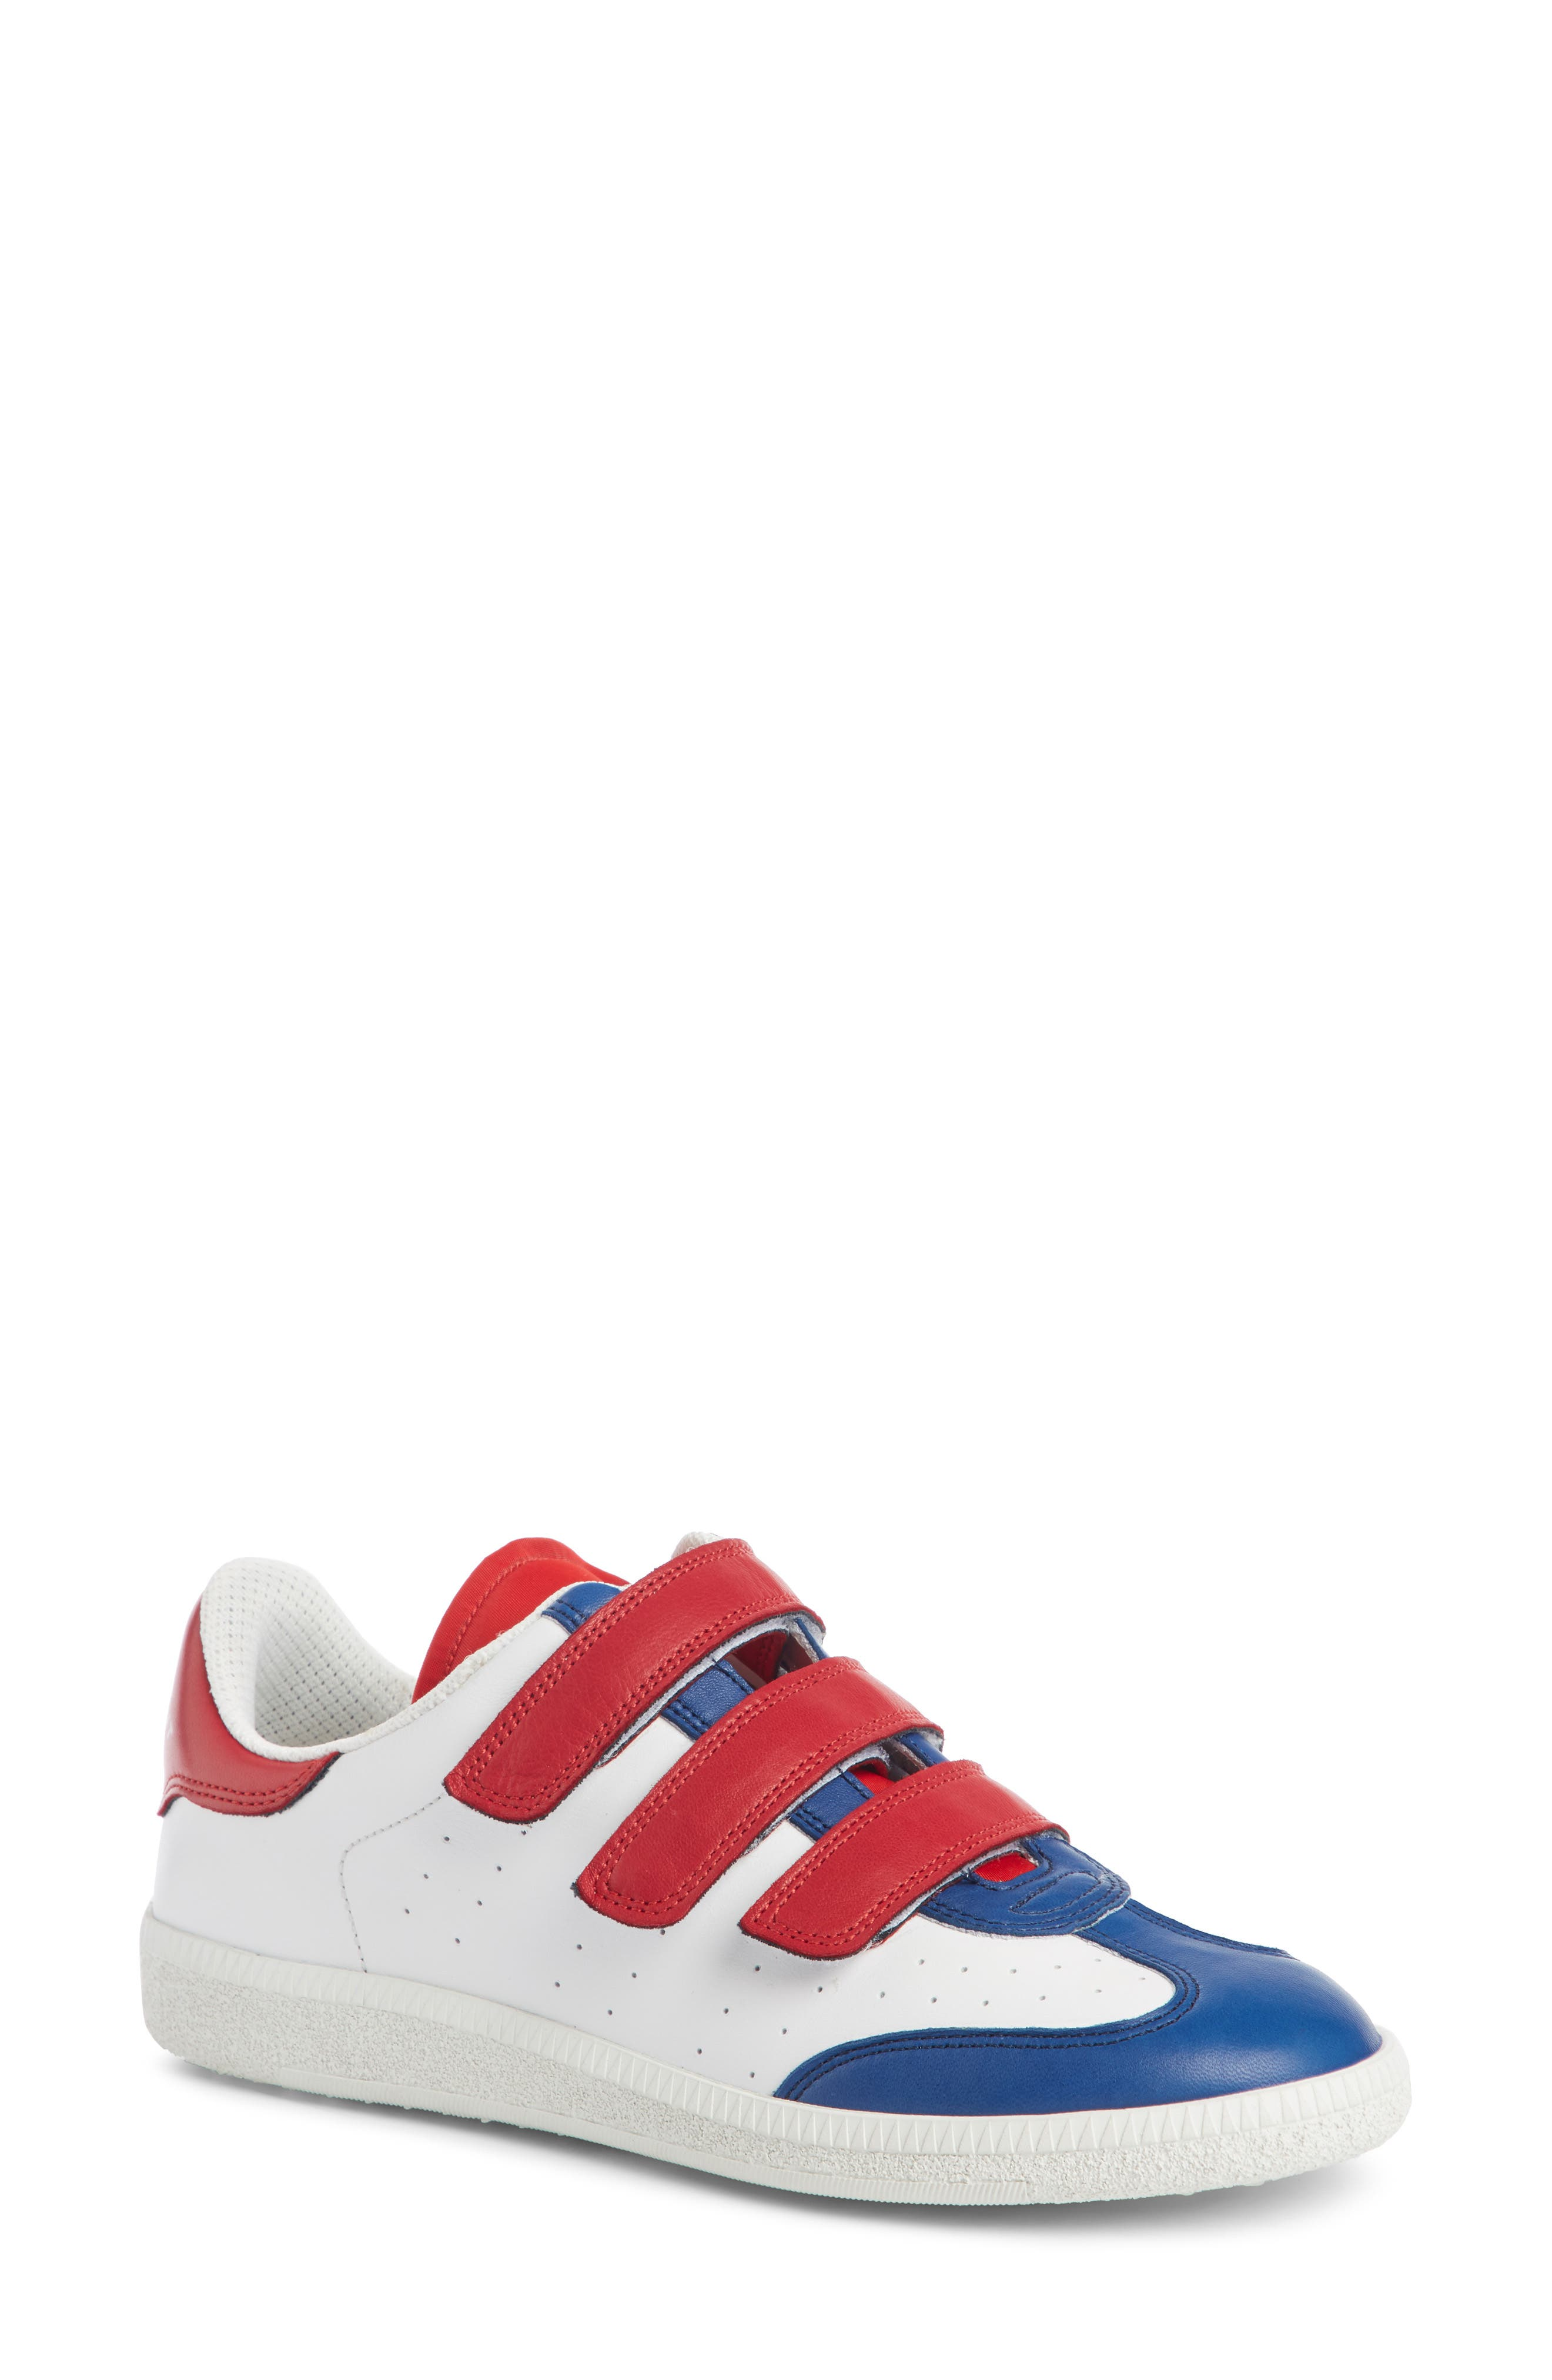 Beth Sneaker,                         Main,                         color, White/ Blue/ Red